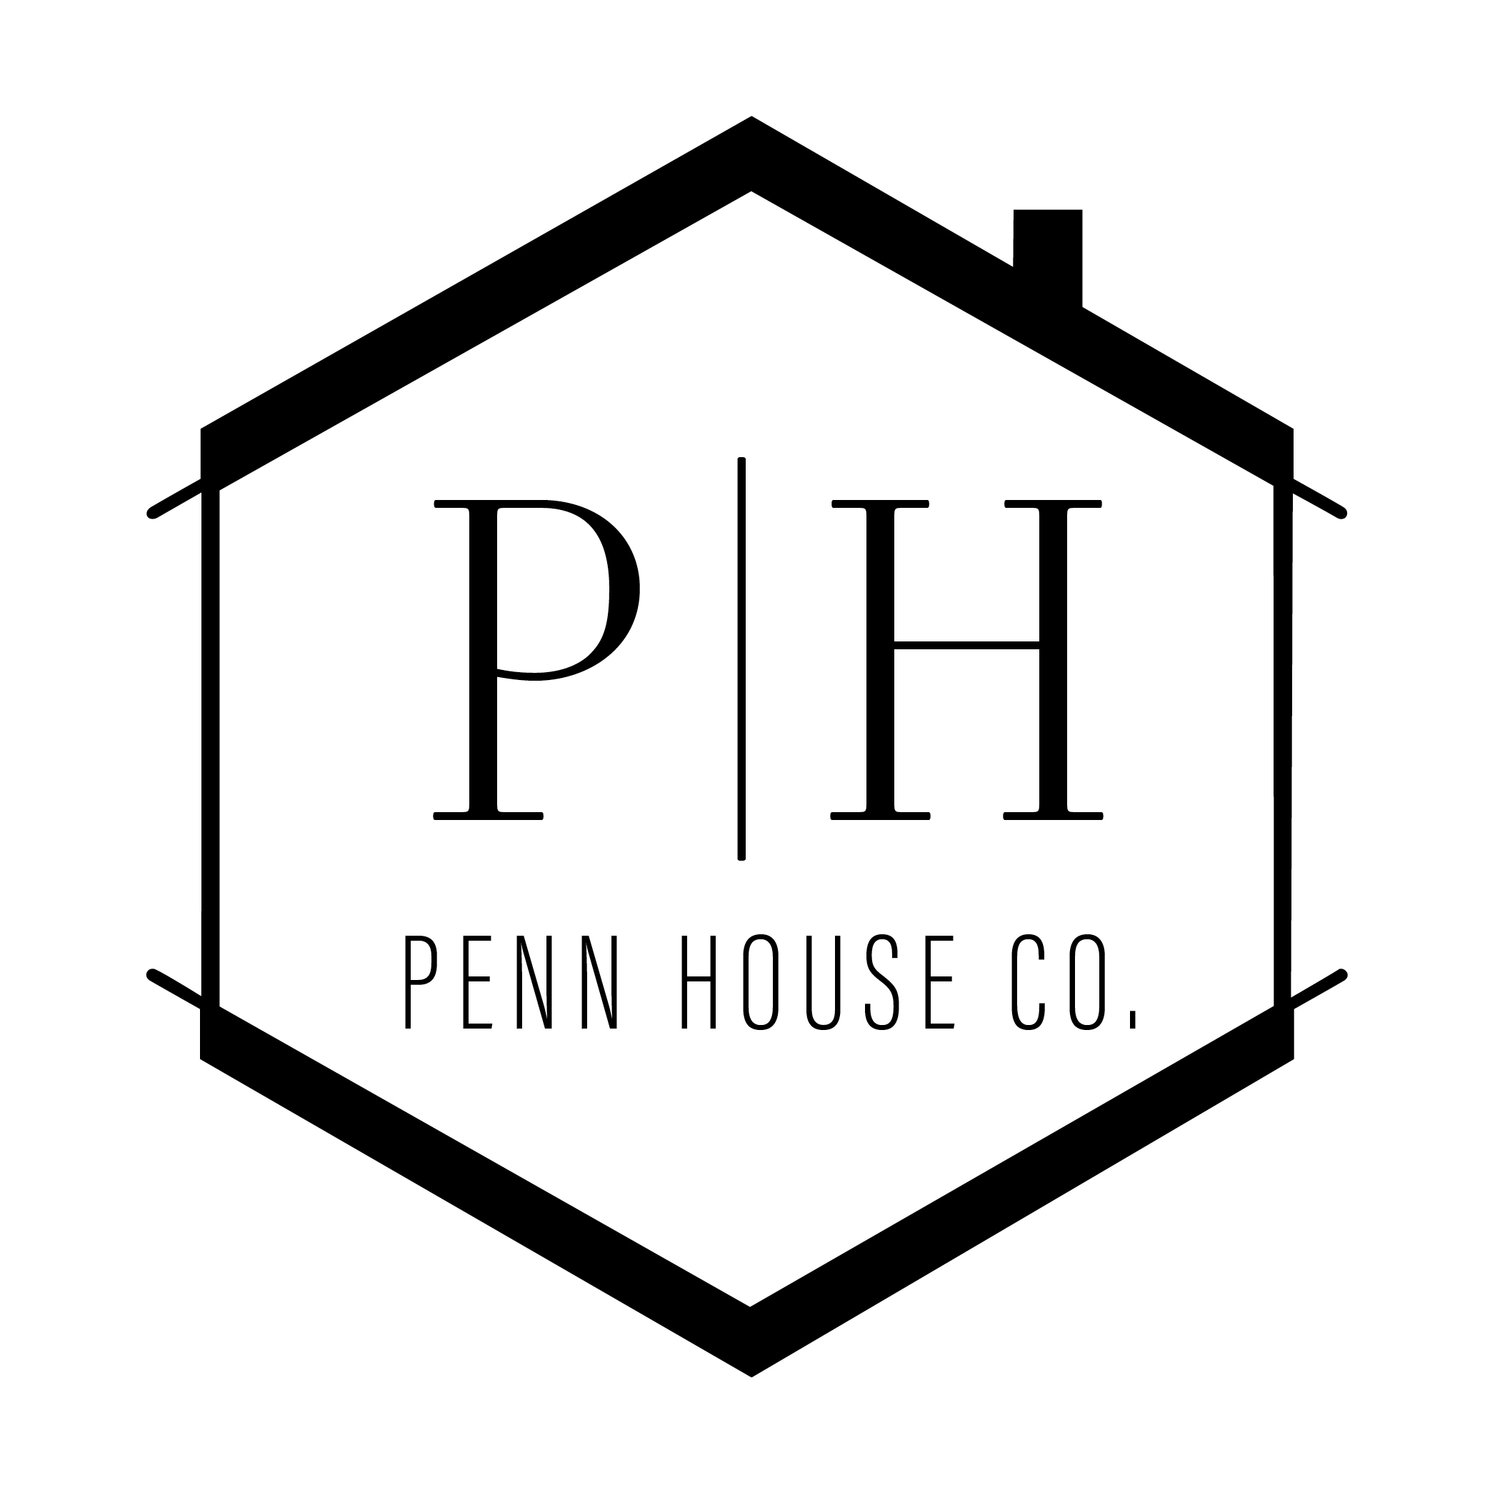 Penn House Co.